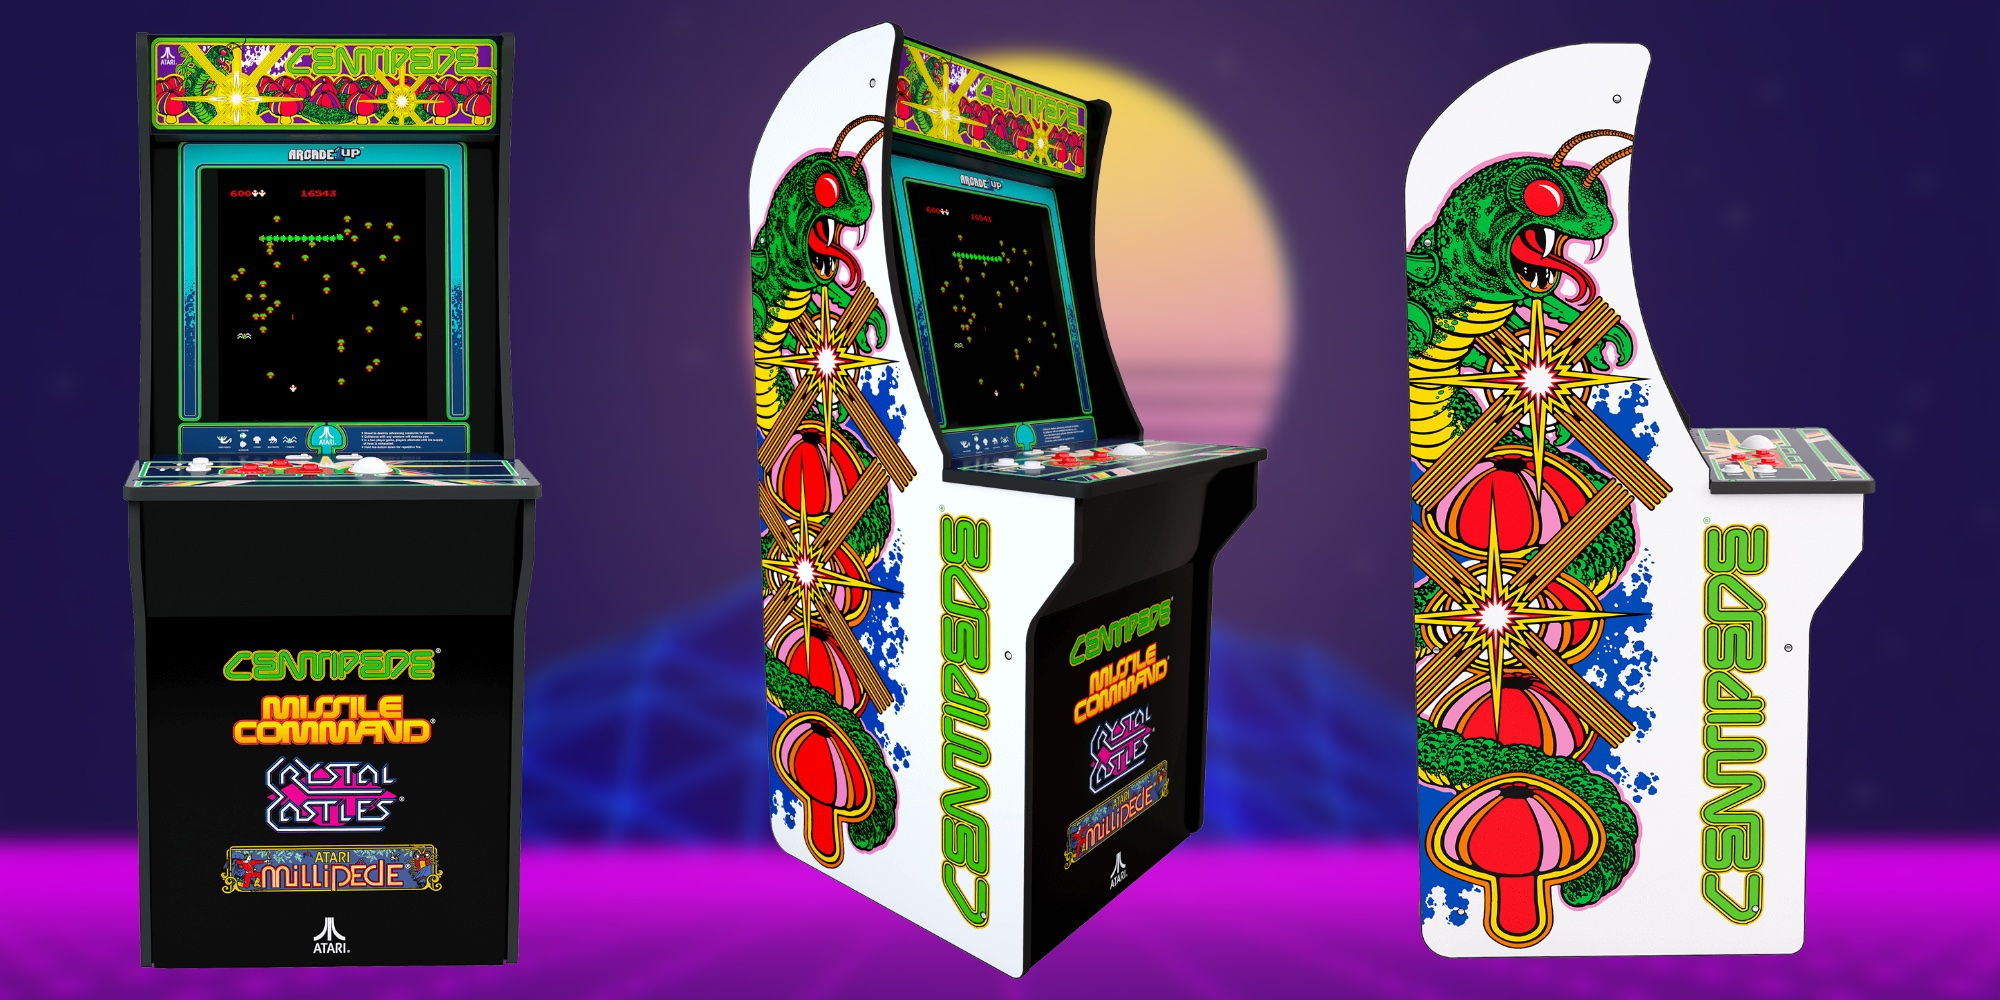 Every Game Room Needs Arcade1up S Centipede Arcade Cabinet At 175 30 Off 9to5toys